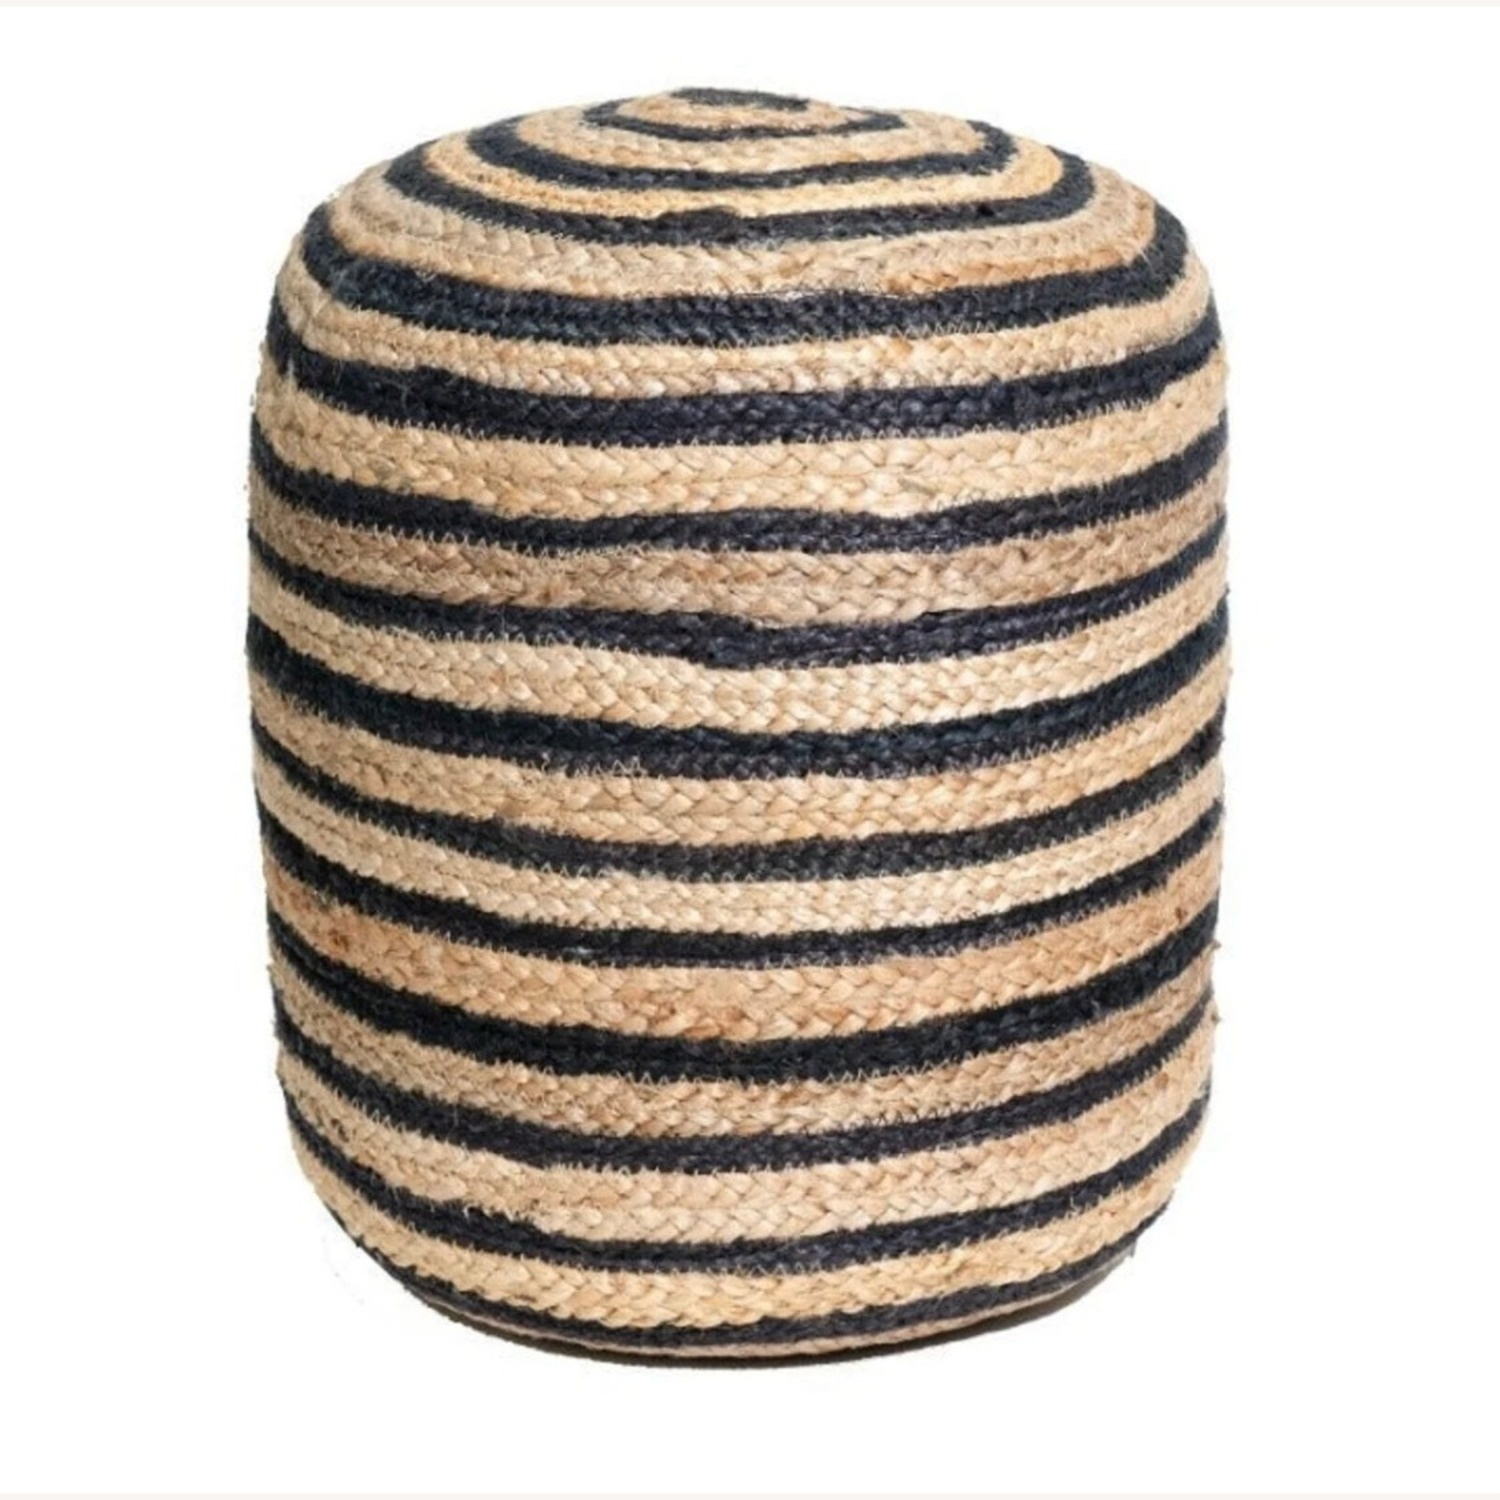 Hand Made Jutee Braided Multi-Coloured Pouf - image-3